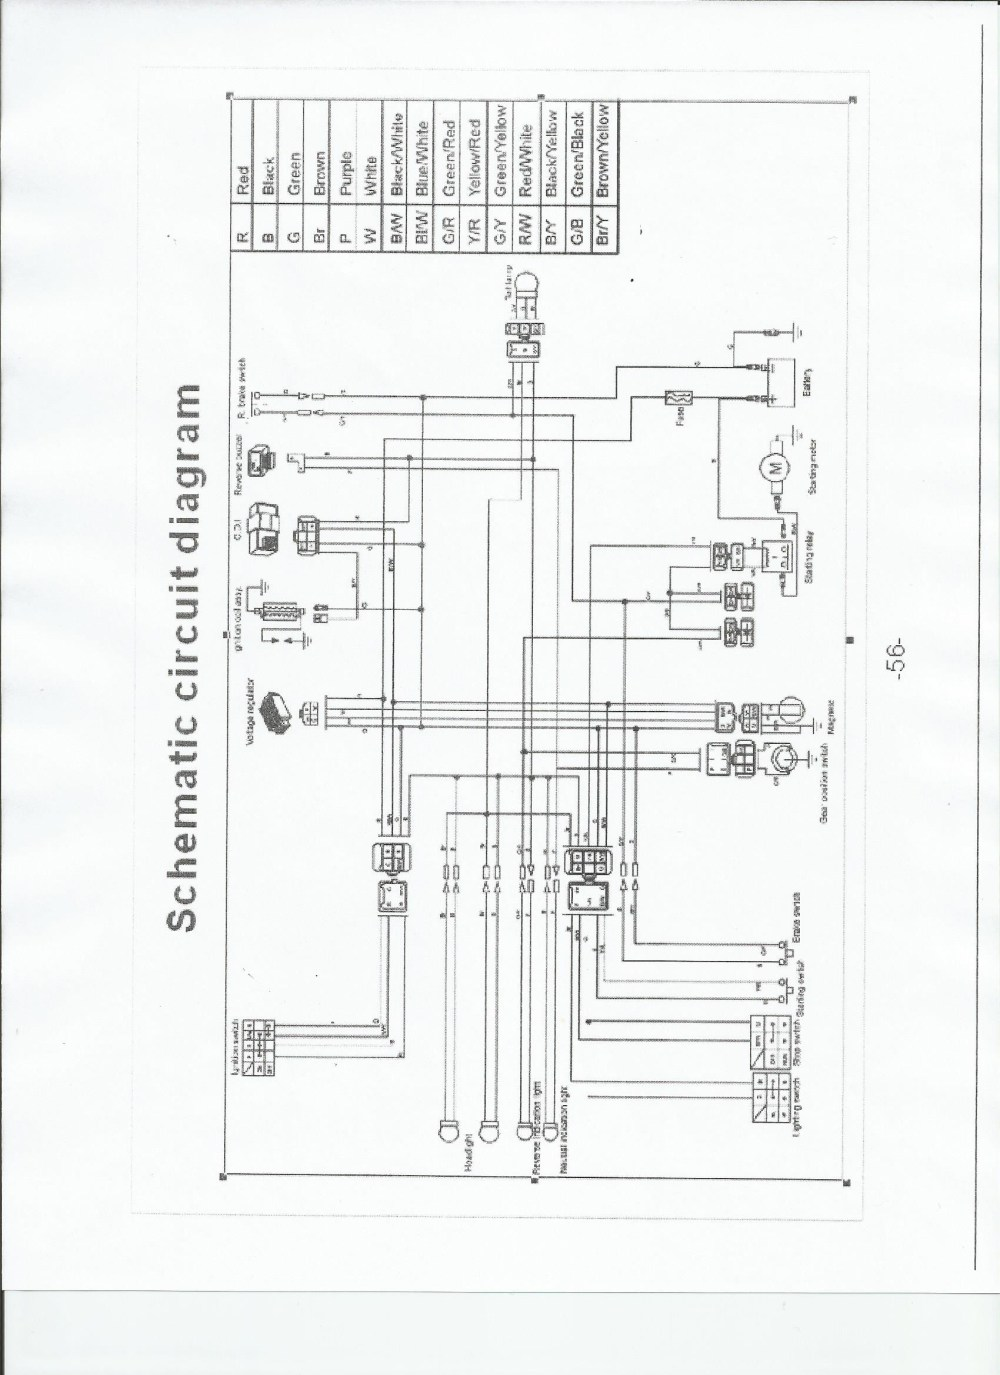 medium resolution of suzuki atv stator wiring diagram wiring diagram databasetaotao 50 scooter cdi wiring diagram